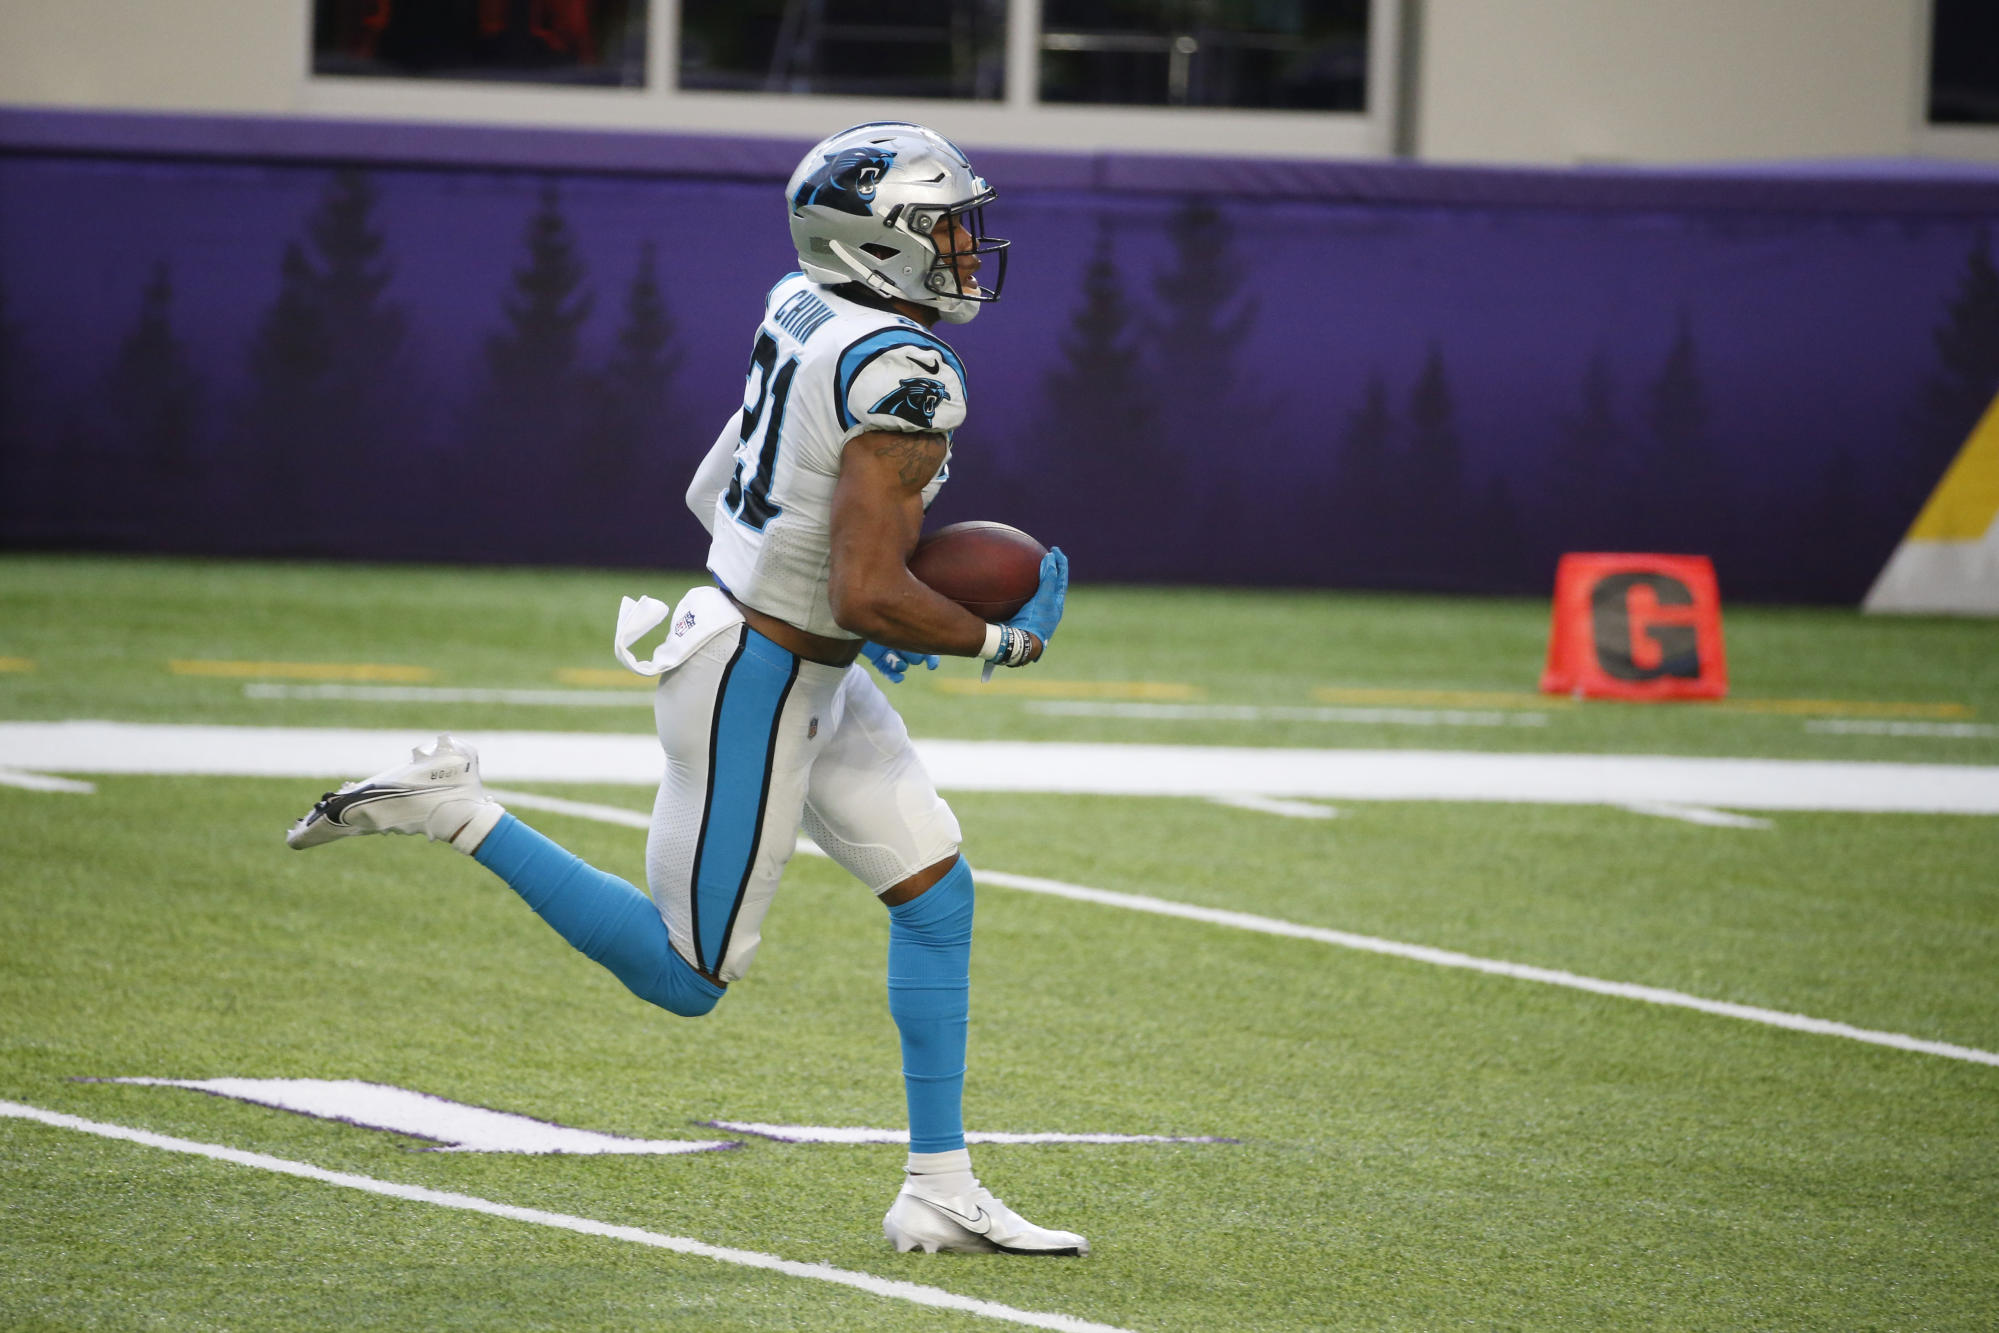 NFL: Jeremy Chinn scores fumble-return TDs on back-to-back plays